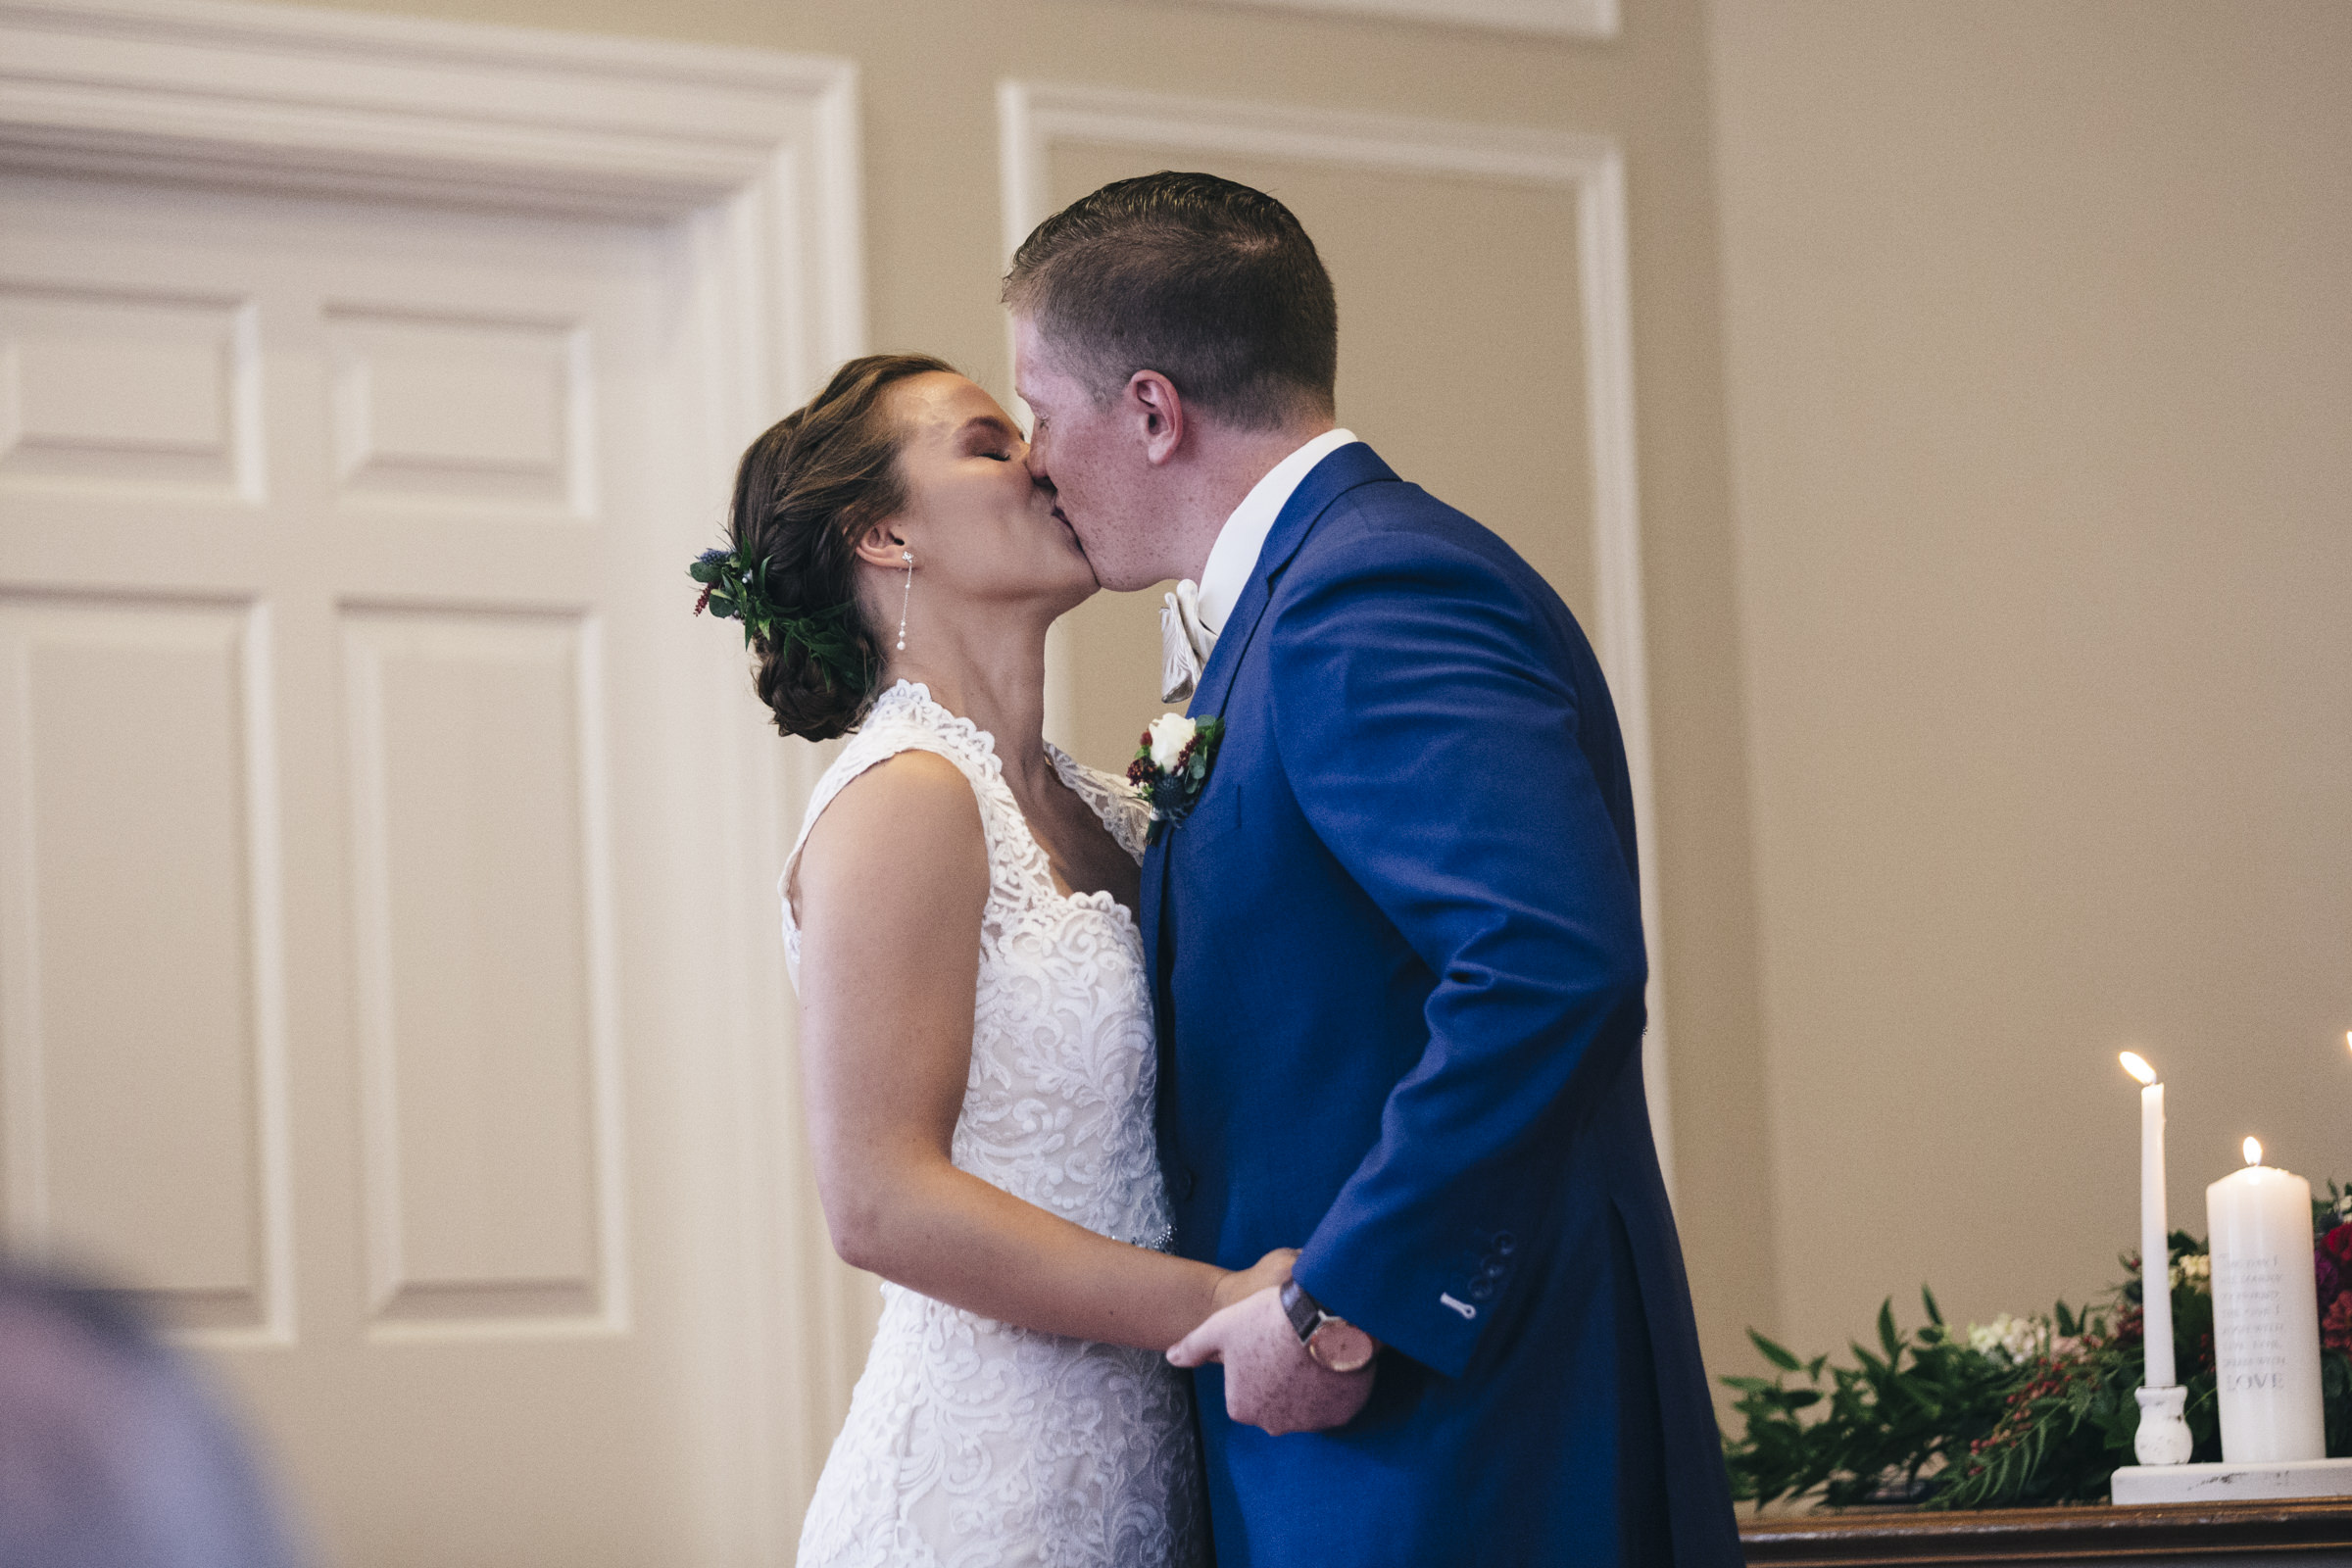 Bride and groom kiss during their wedding ceremony at Prout Chapel